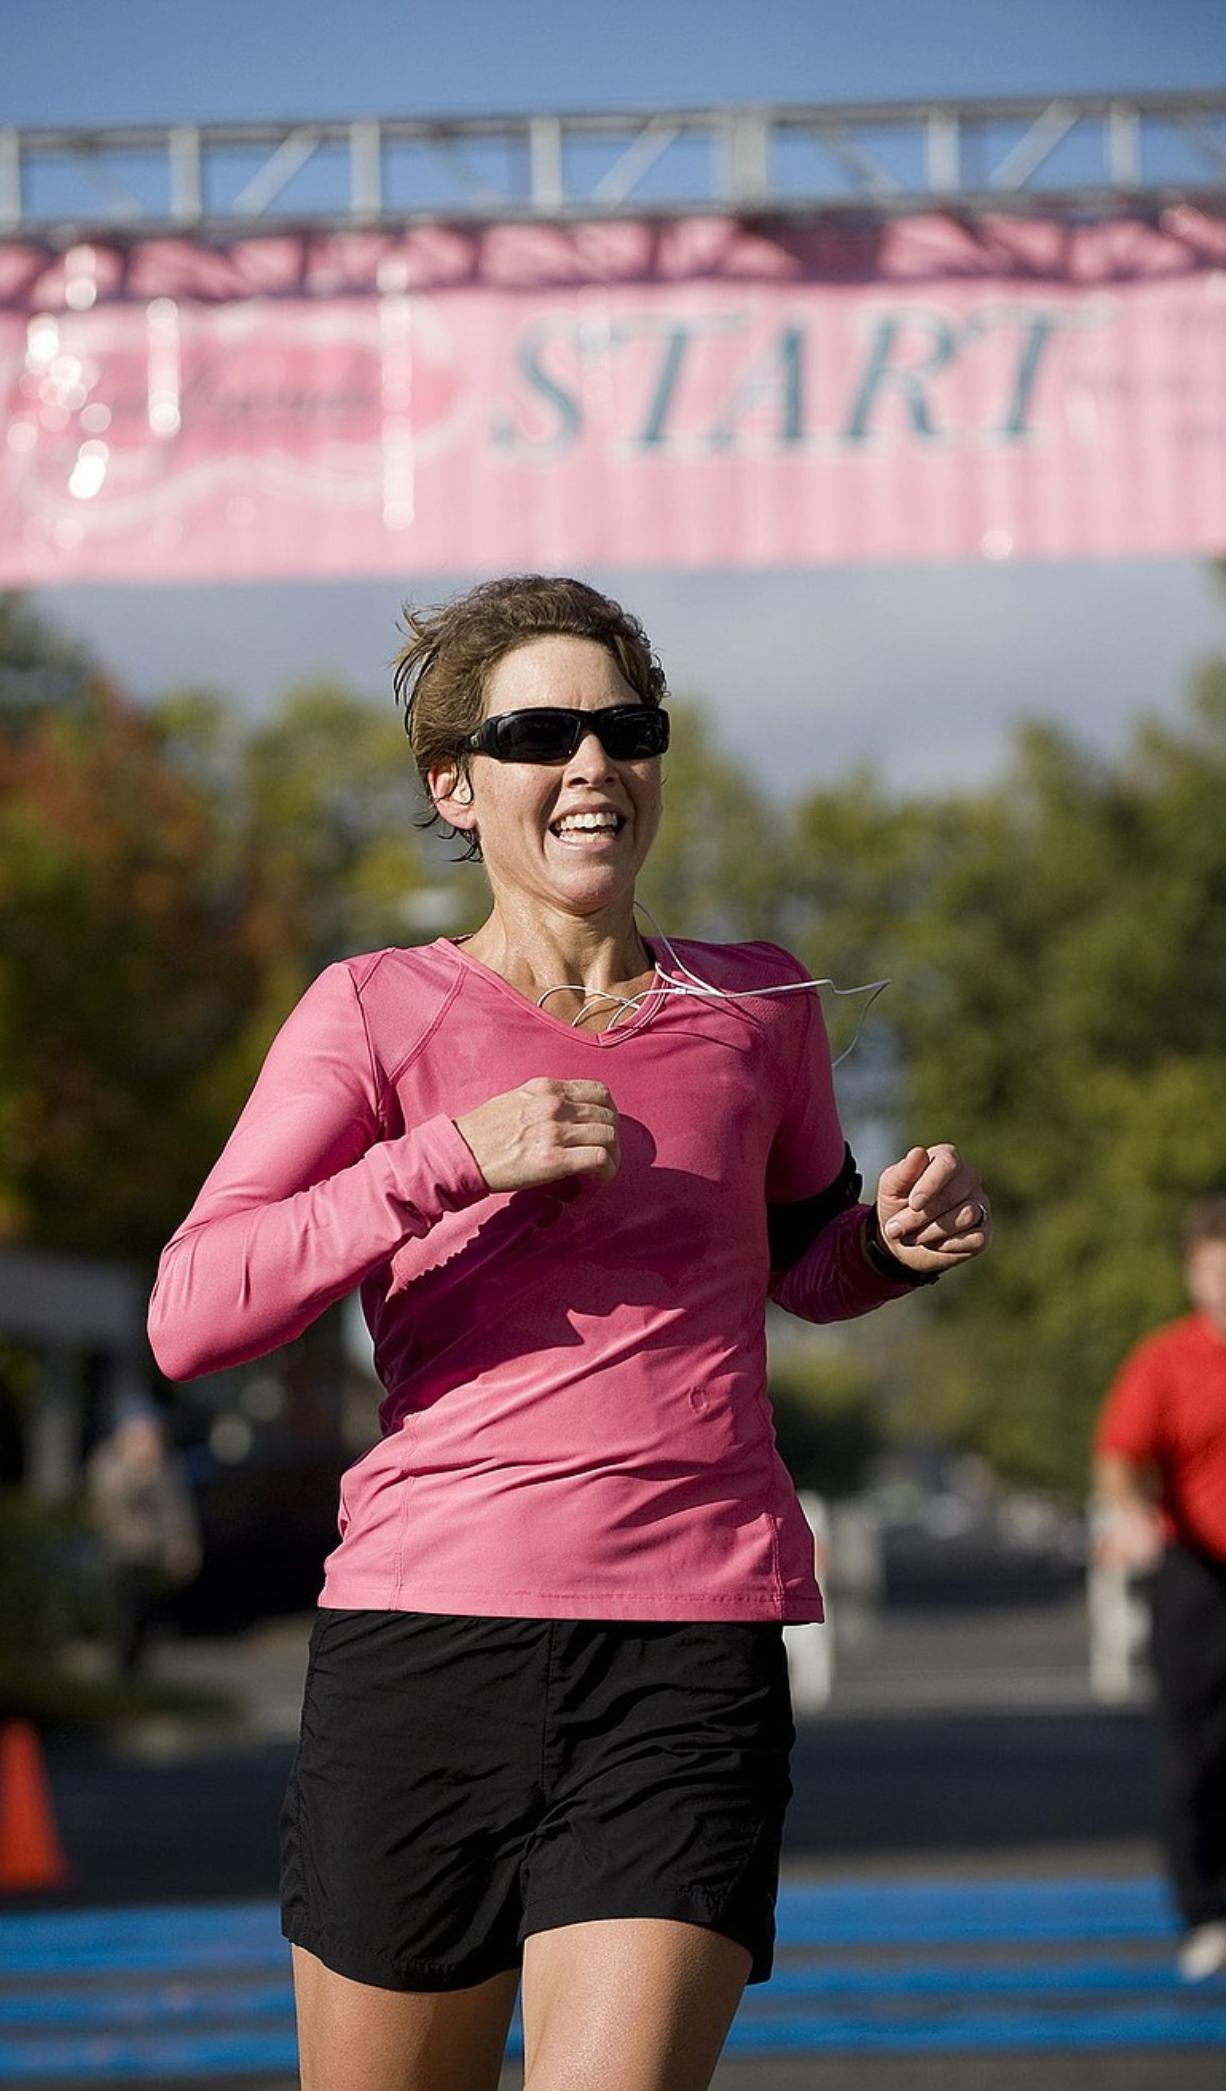 Meg Godfrey, from Lake Oswego, Ore., is the first runner across the finish line at the fourth-annual Girlfriends Half Marathon in Vancouver on Sunday.